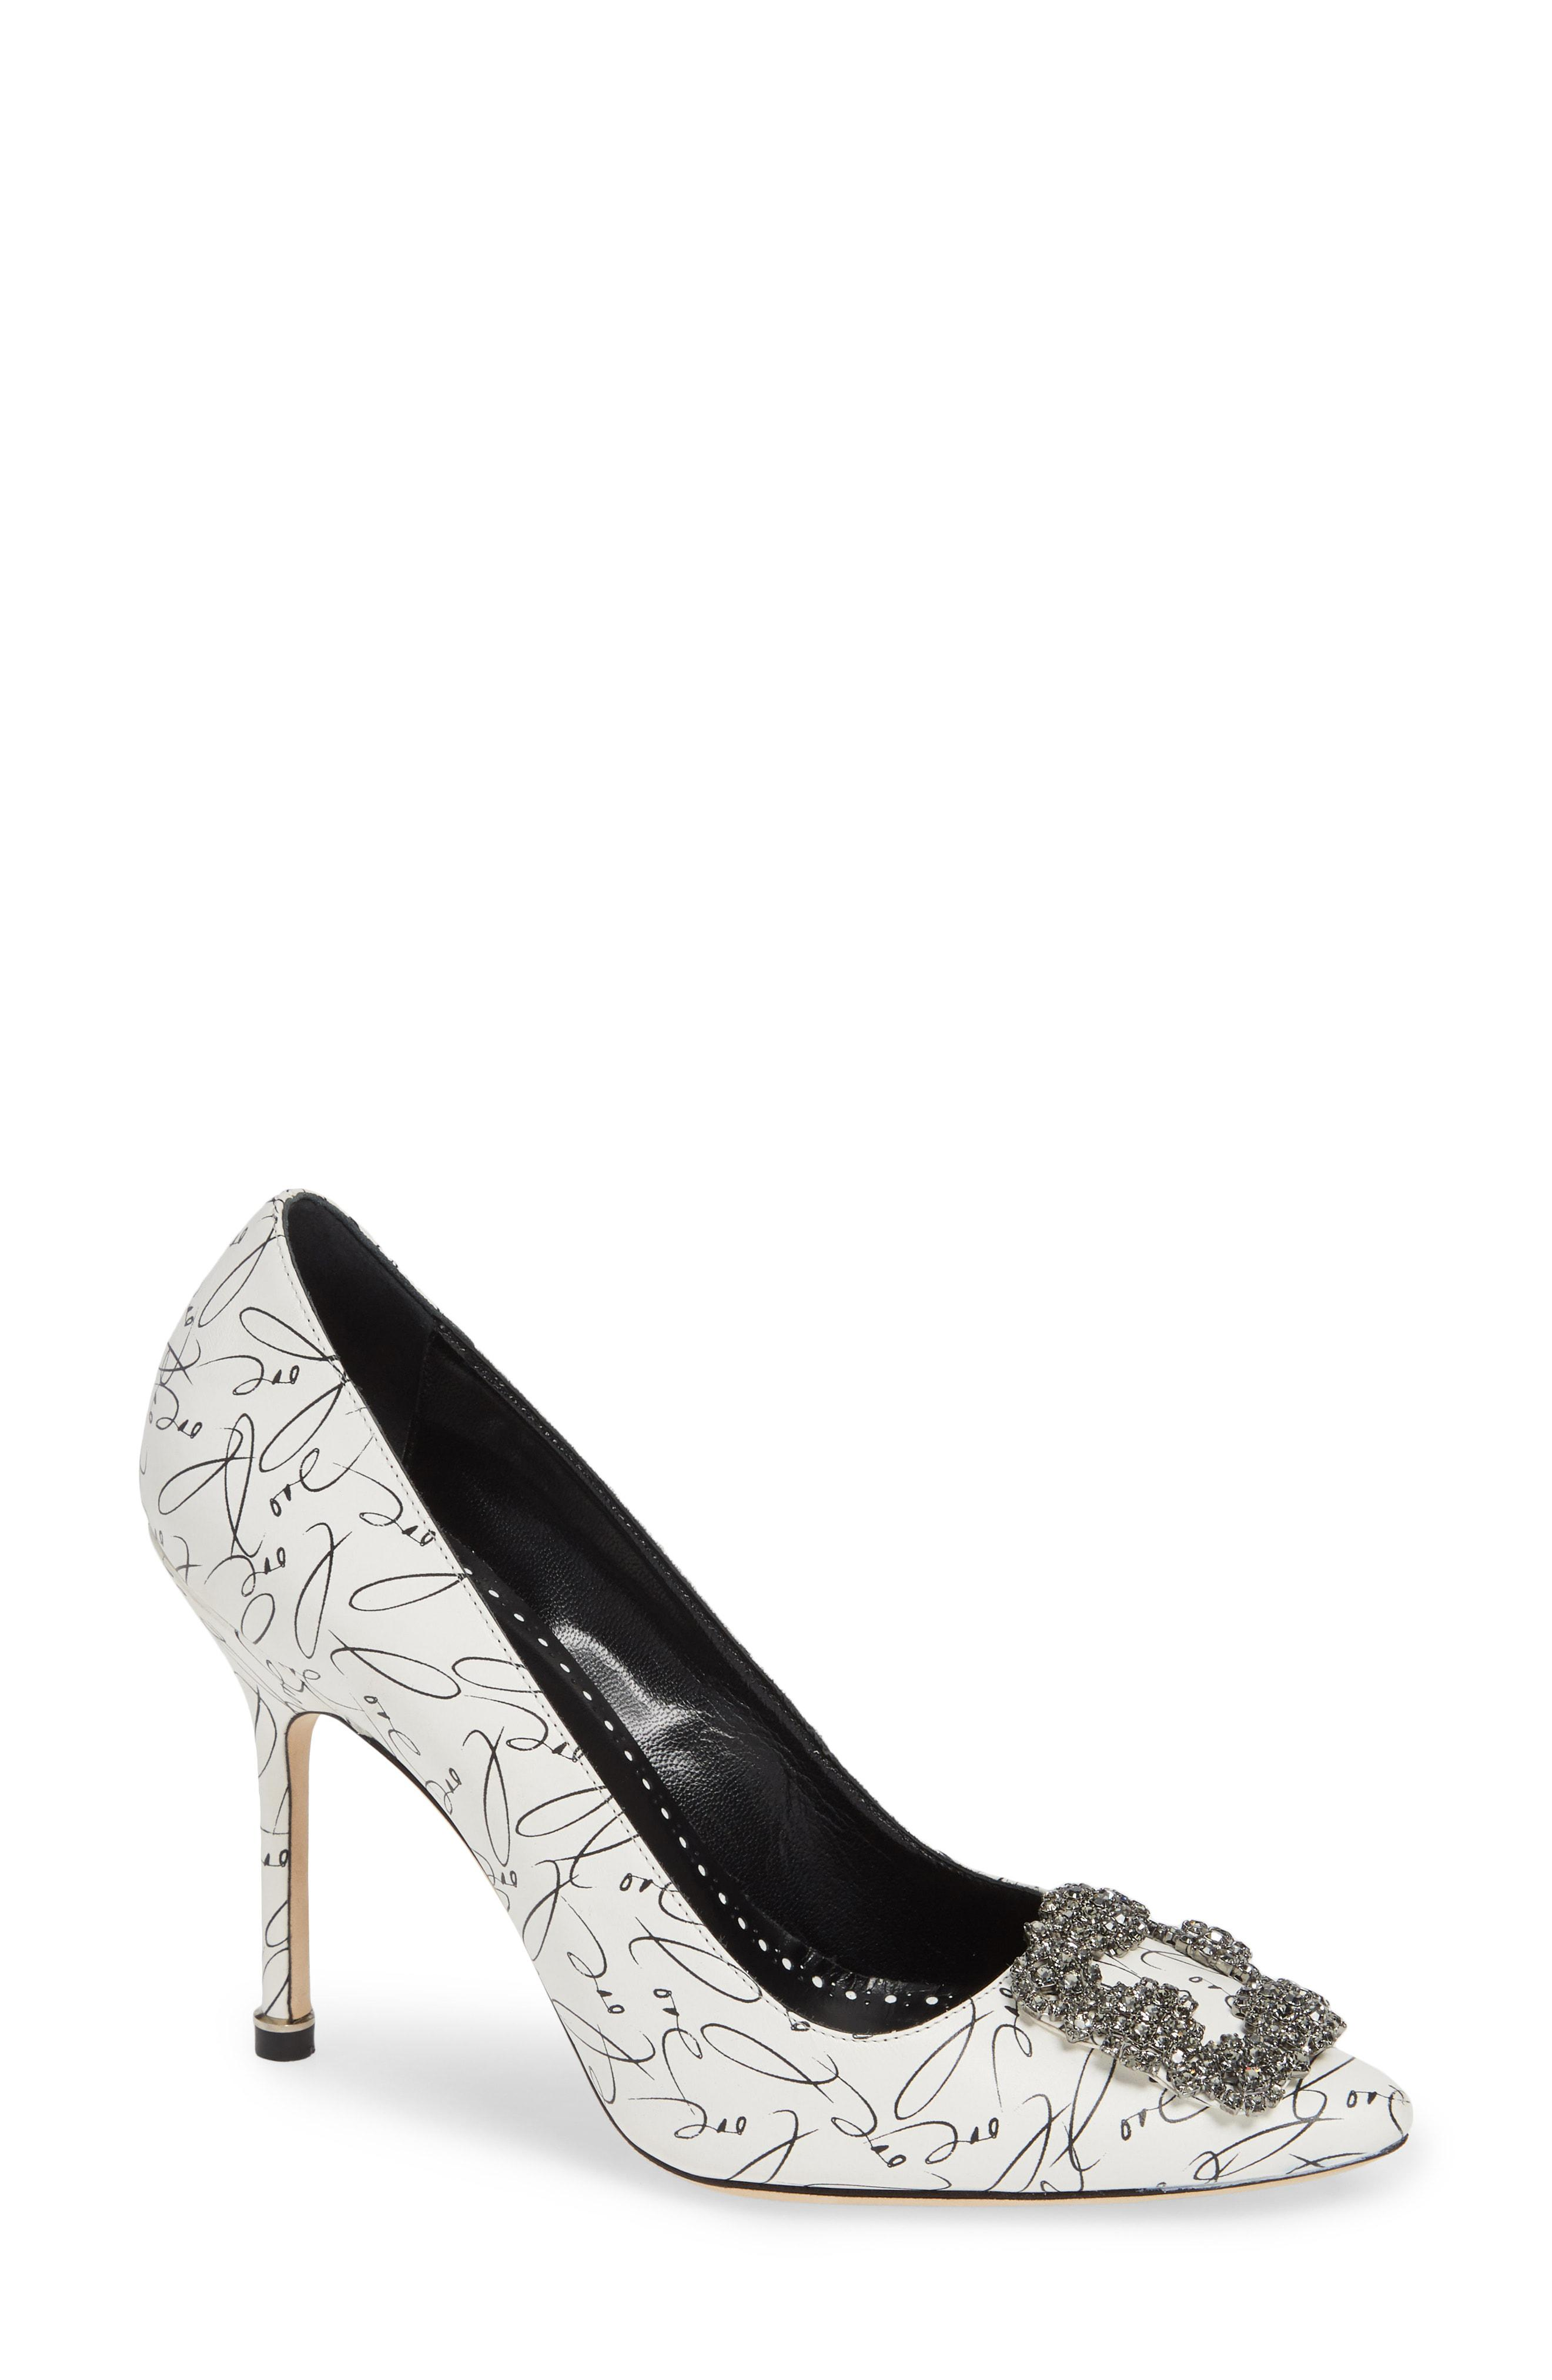 82b8553d3 Lyst - Manolo Blahnik Decade Of Love Hangisi Anniversary Embellished ...